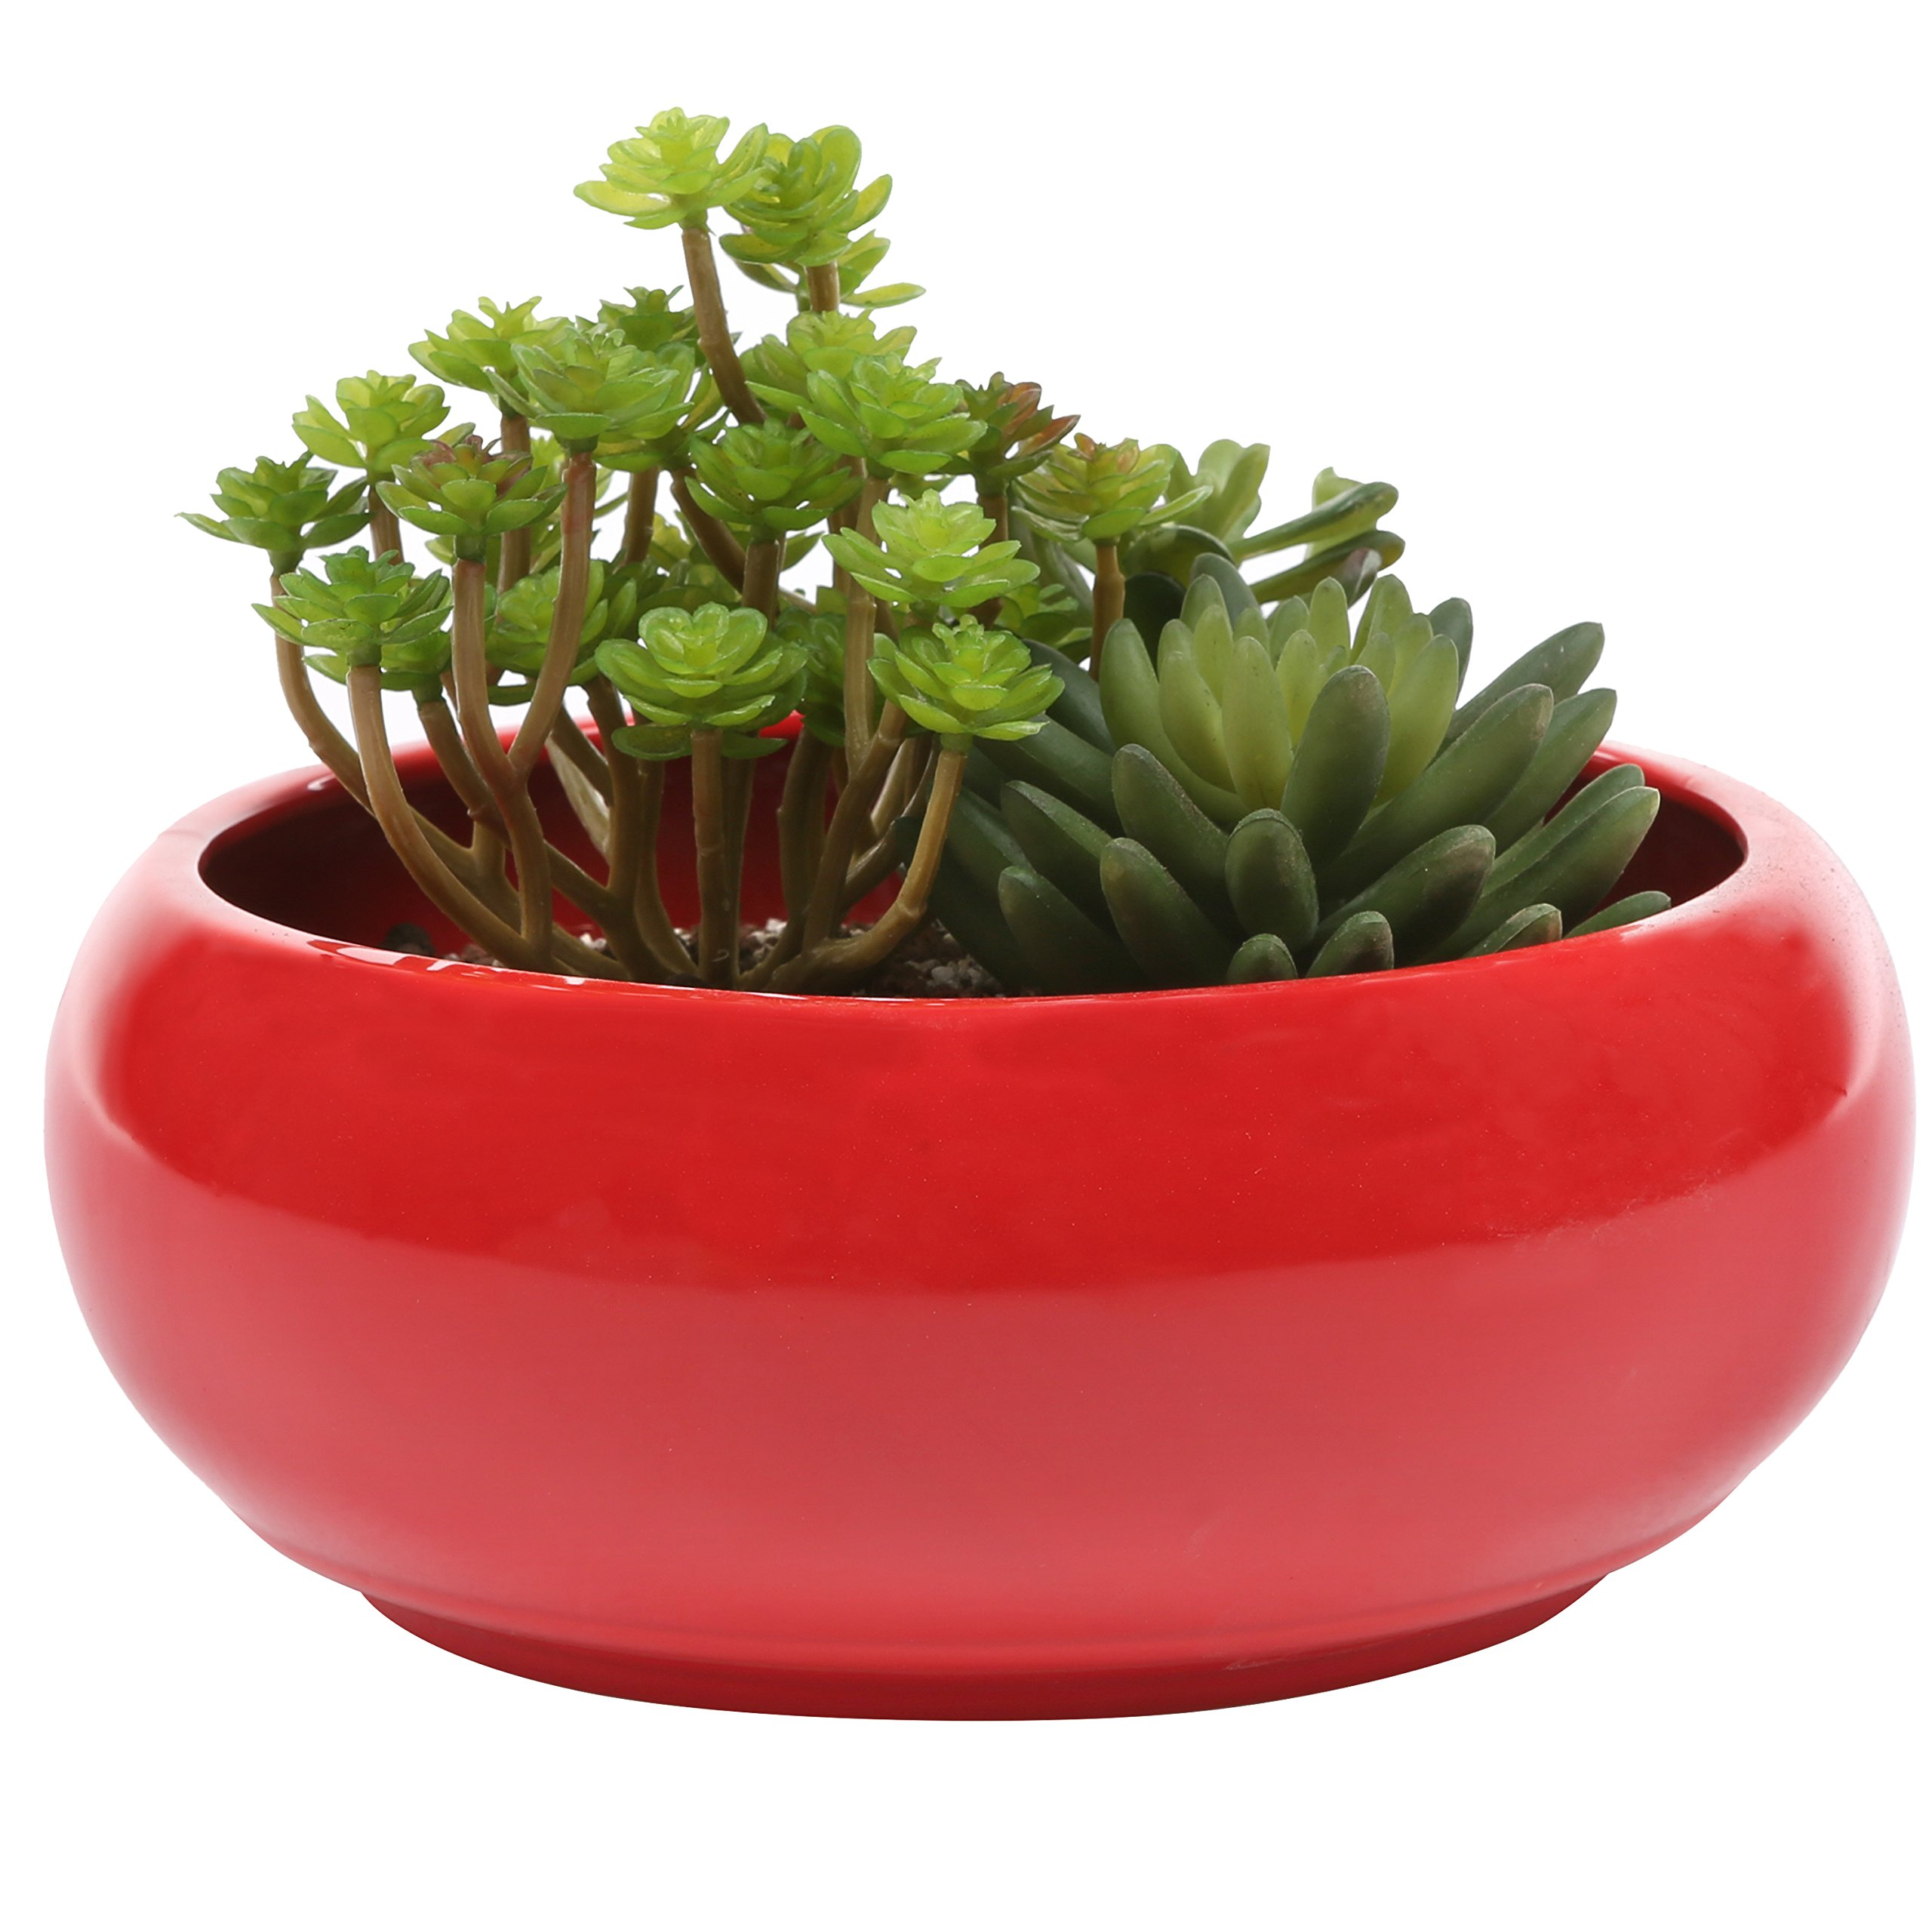 MyGift 8.75-Inch Round Ceramic Planter, Decorative Flower Plant Pot, Red